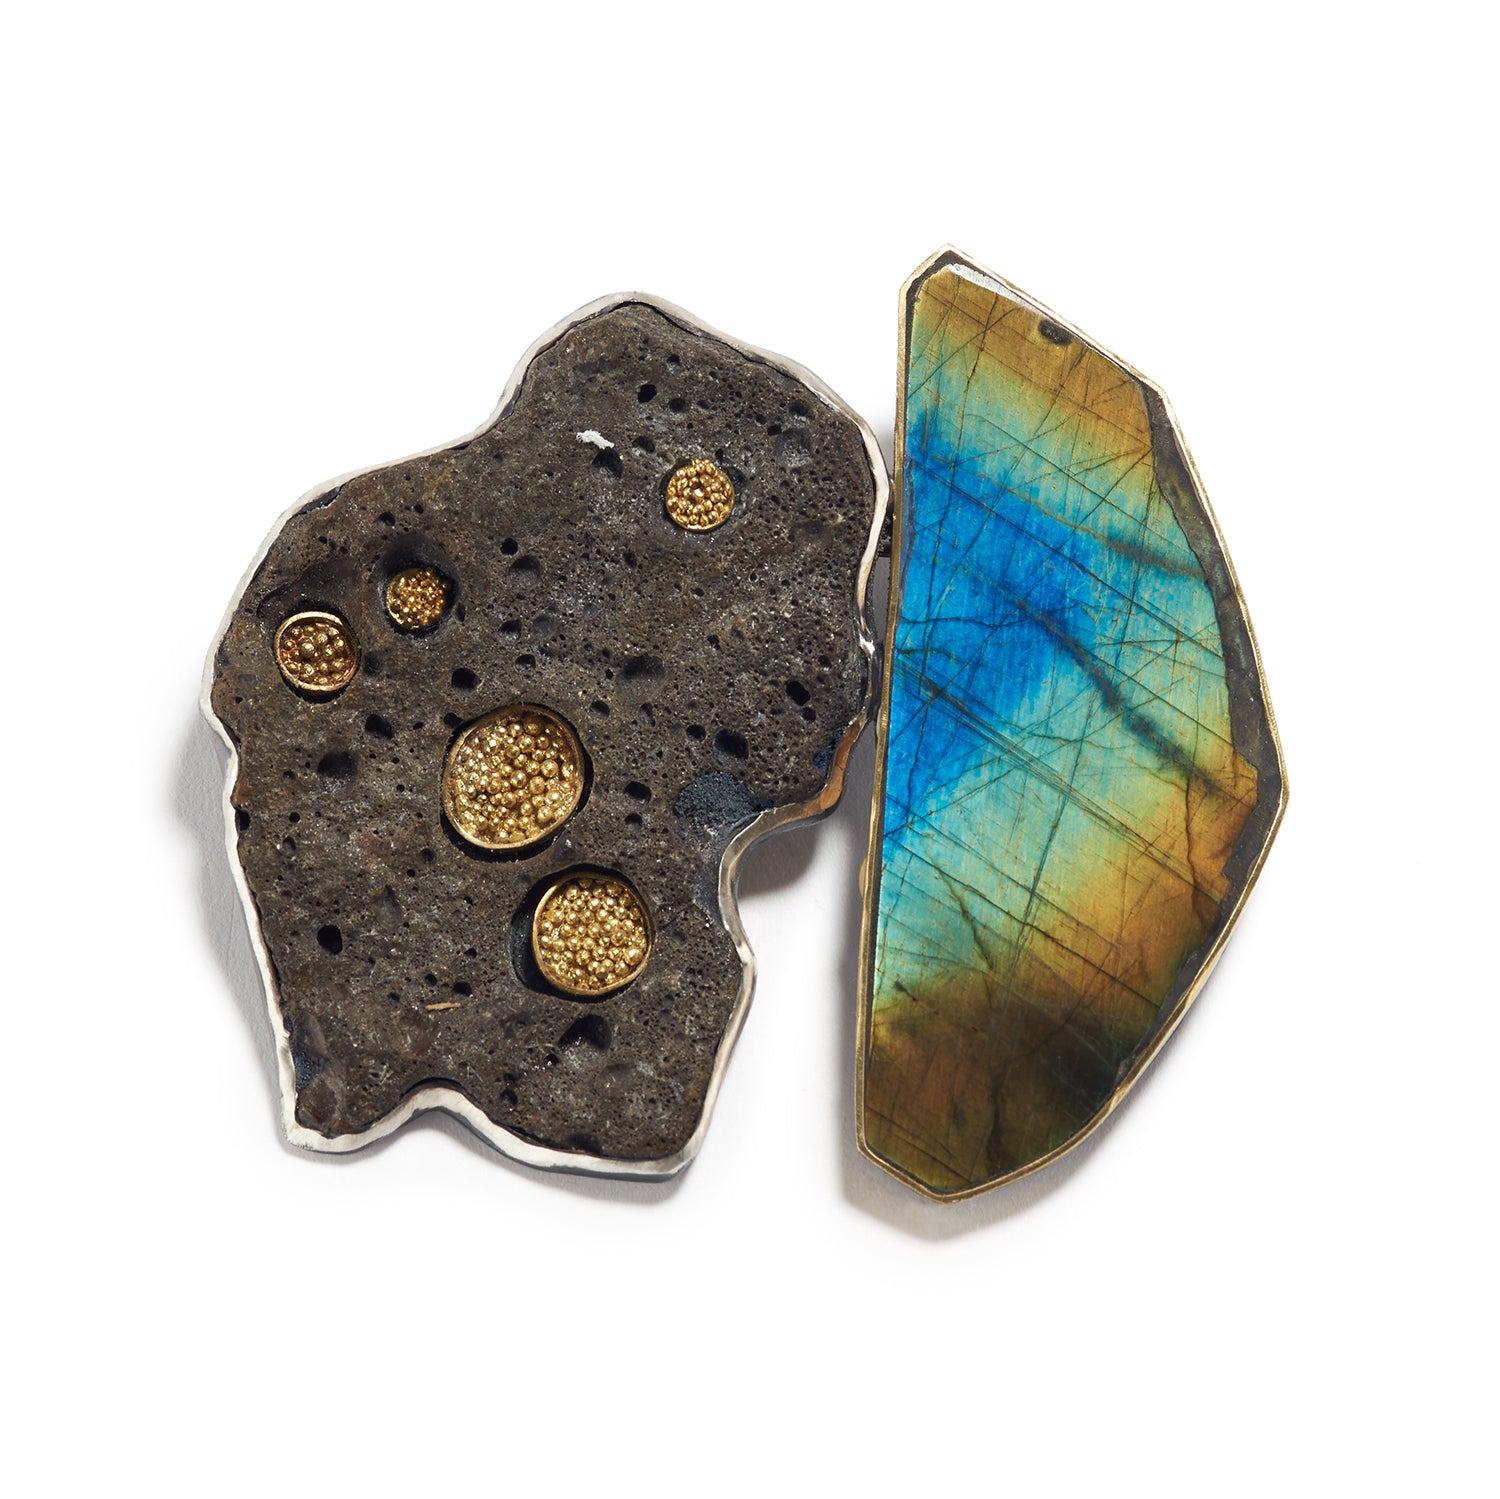 Lava and Spectrolite Brooch